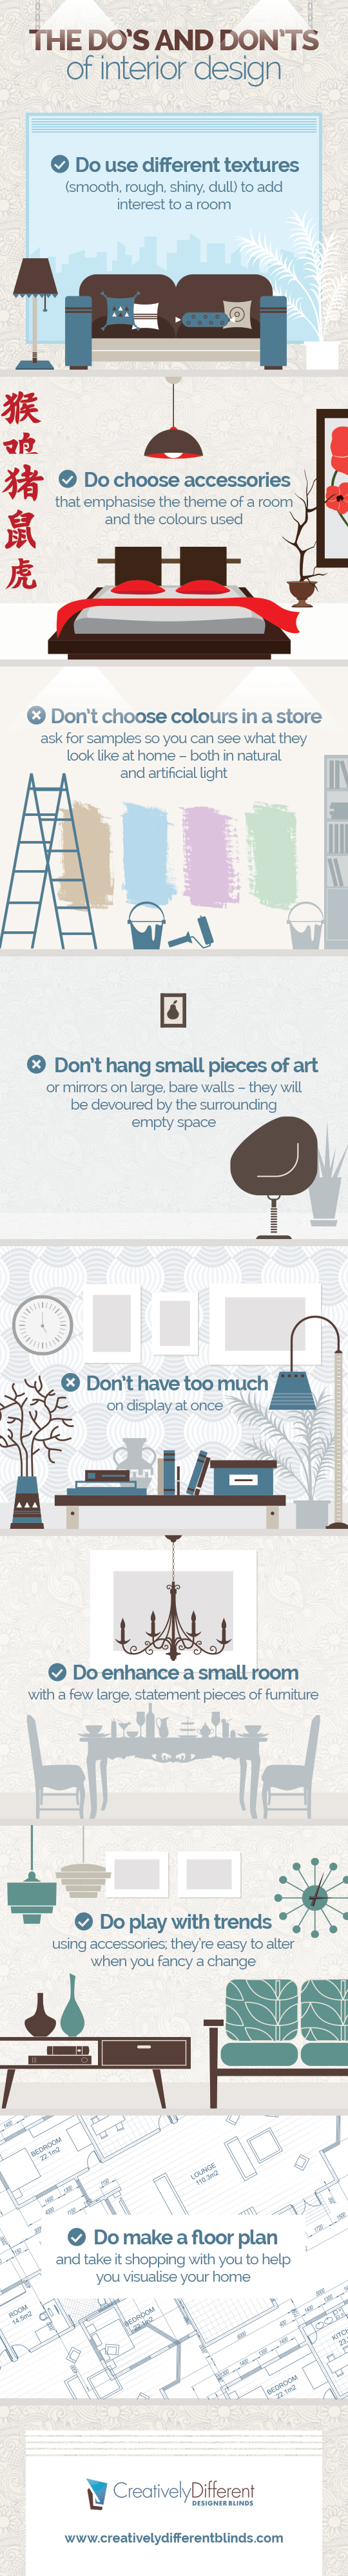 Infographic via creativelydifferentblinds